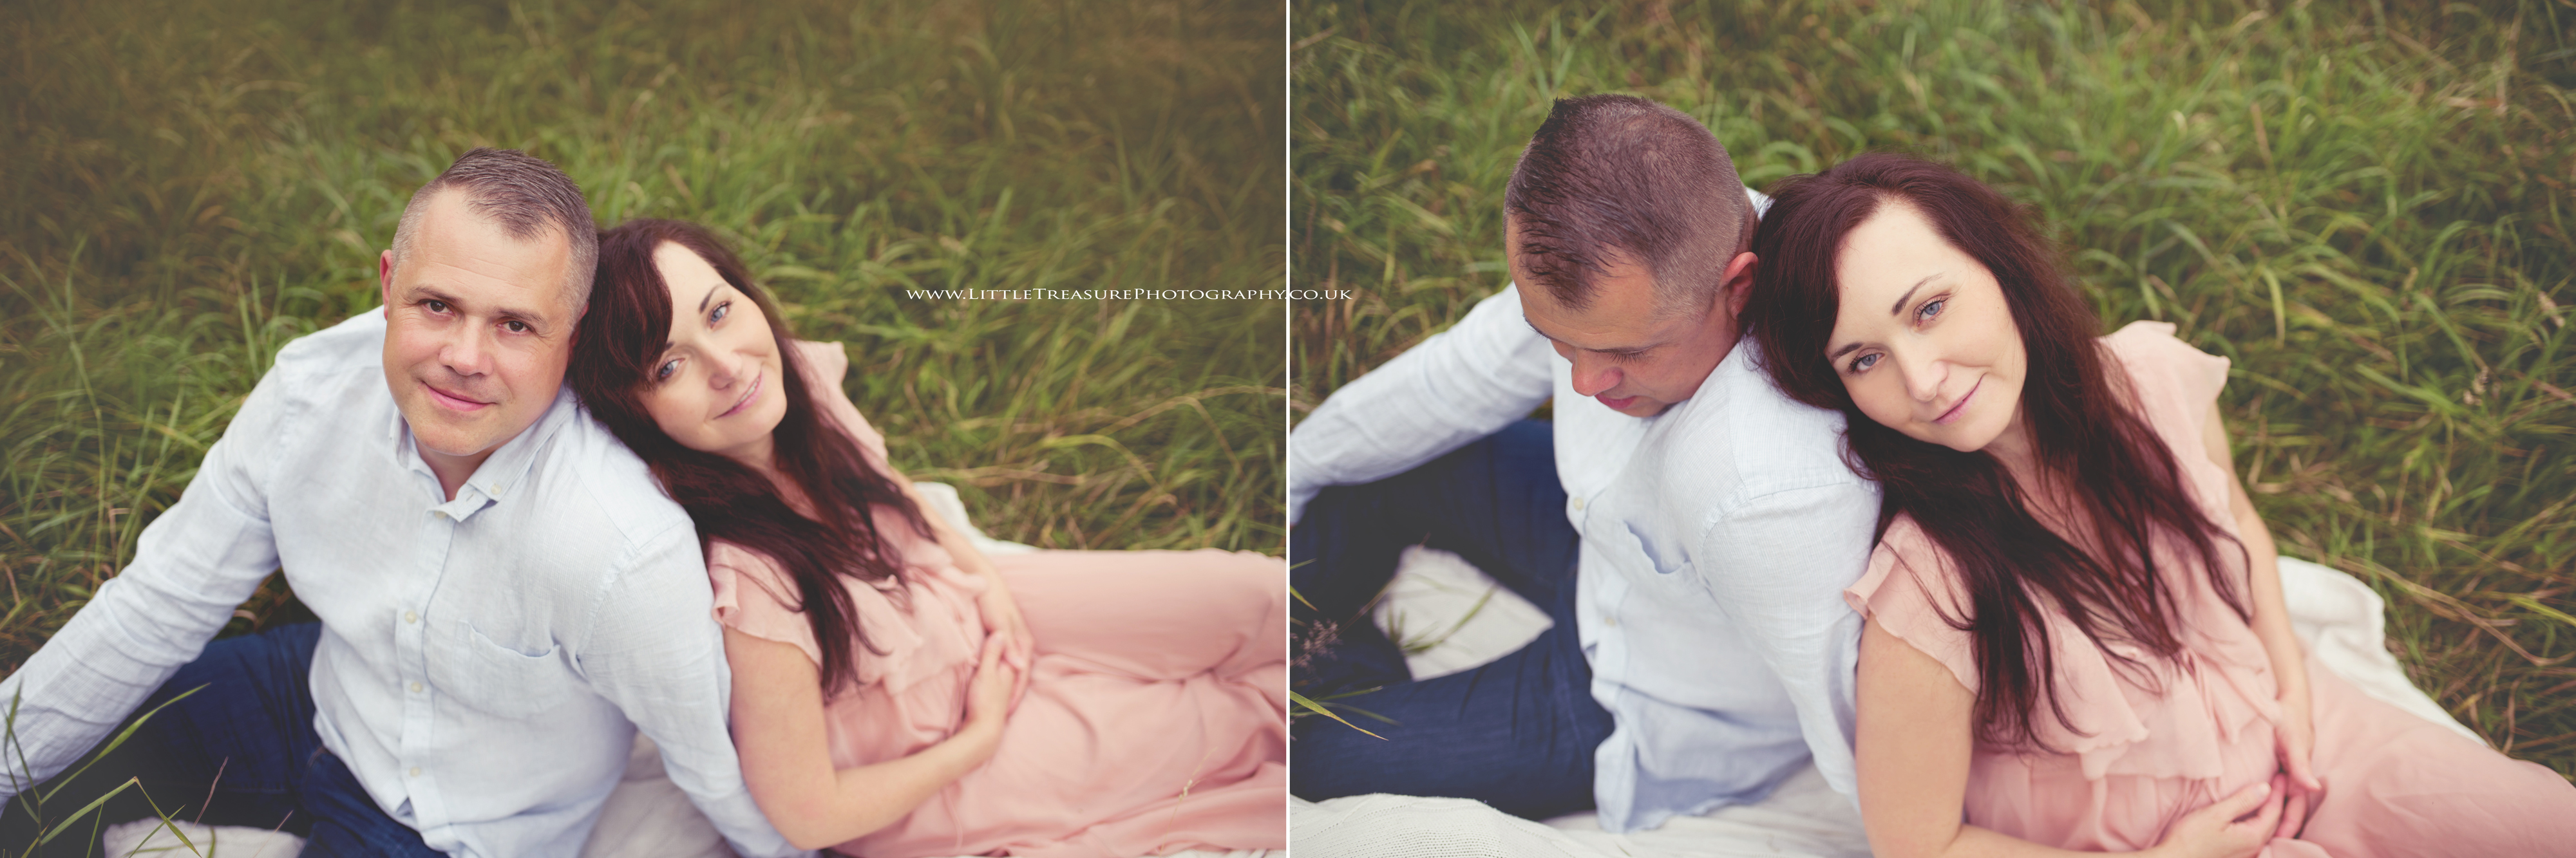 South Ockendon family photographer